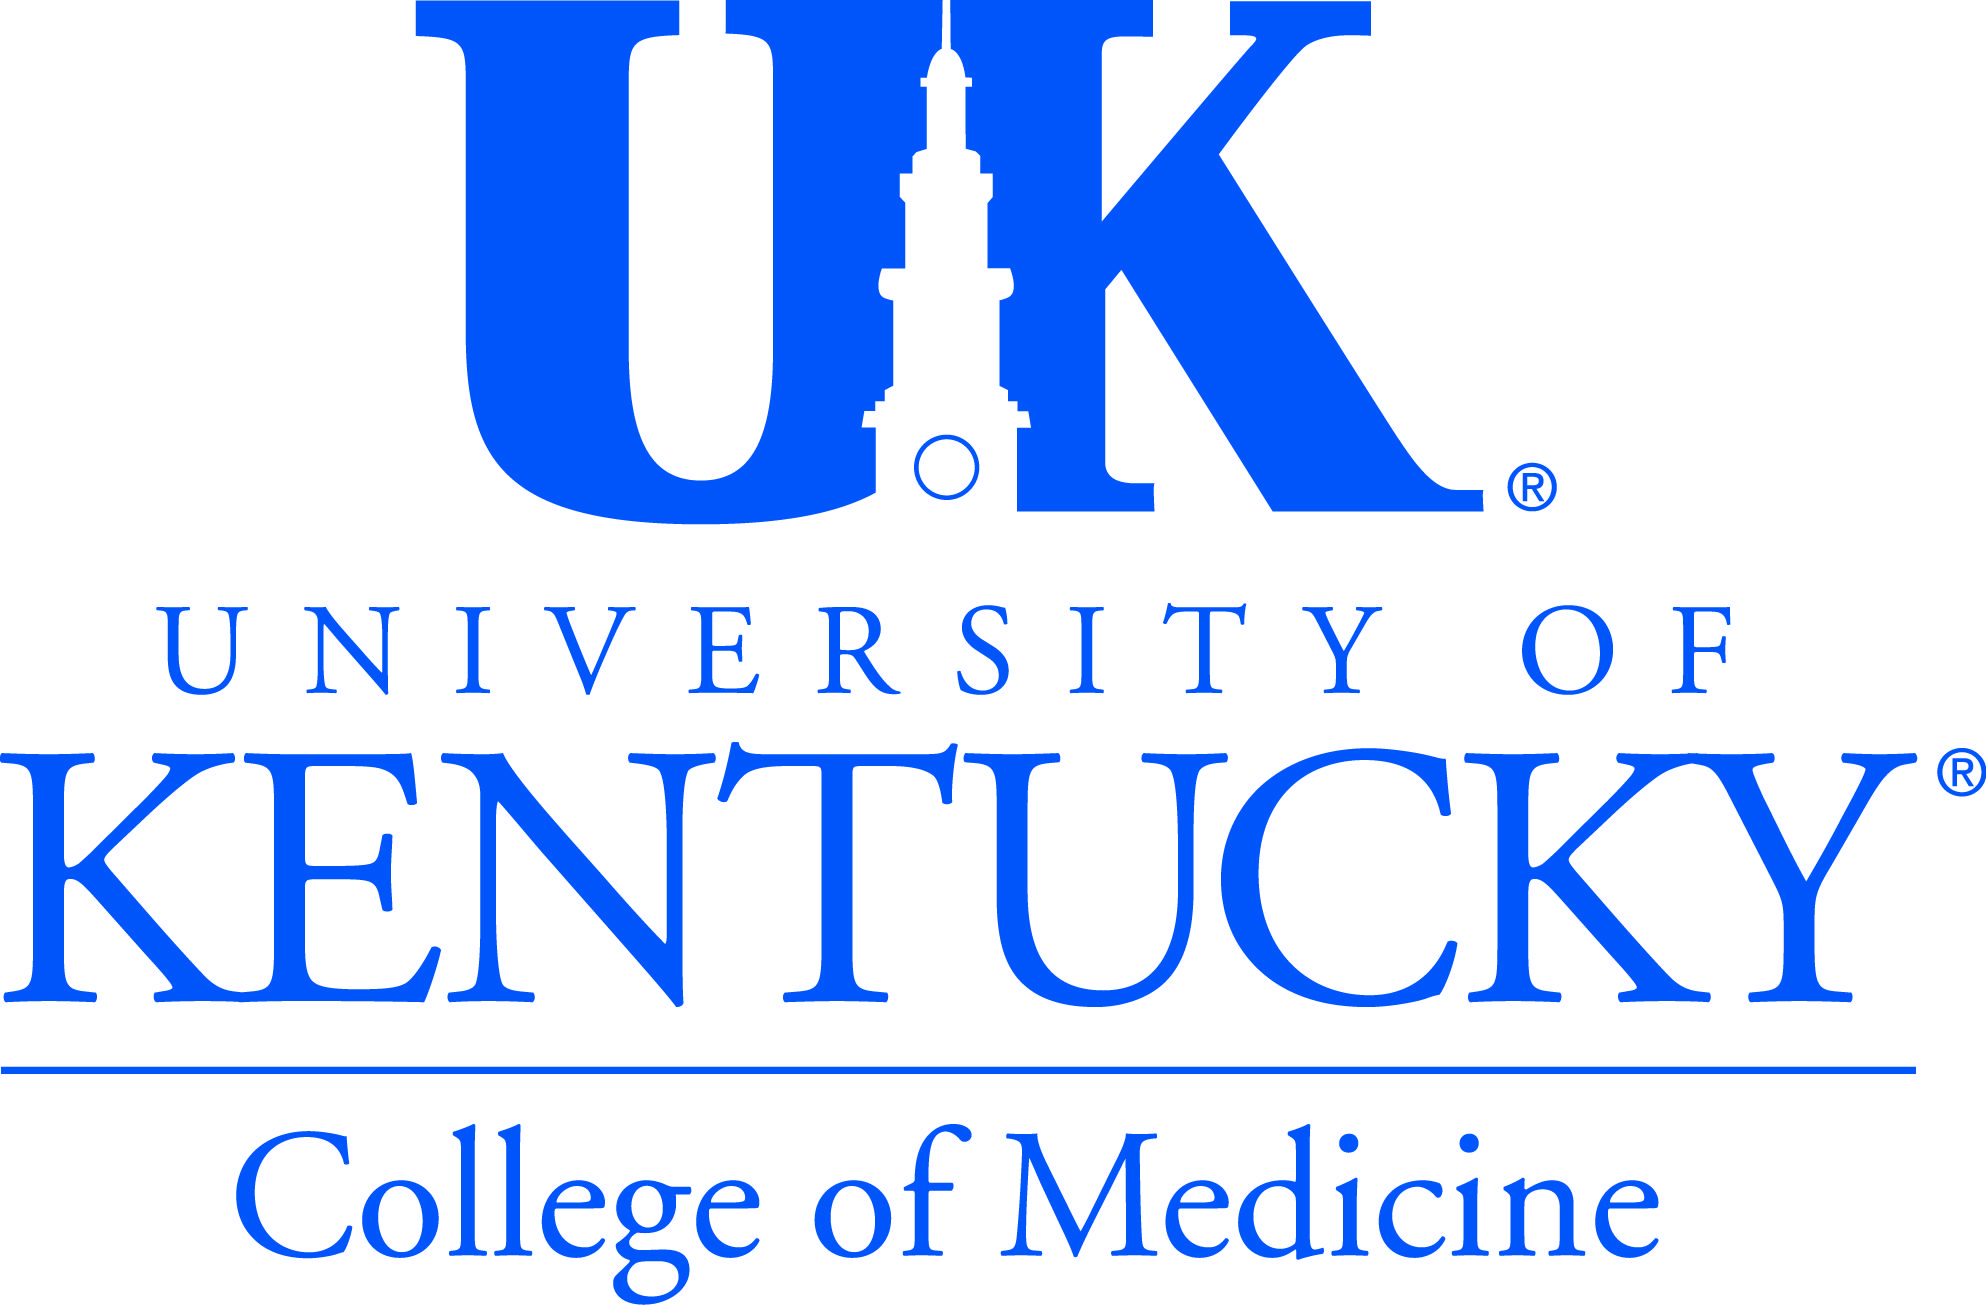 U K College Of Medicine Plans Expansion With Images University Of Kentucky Kentucky Colleges Kentucky